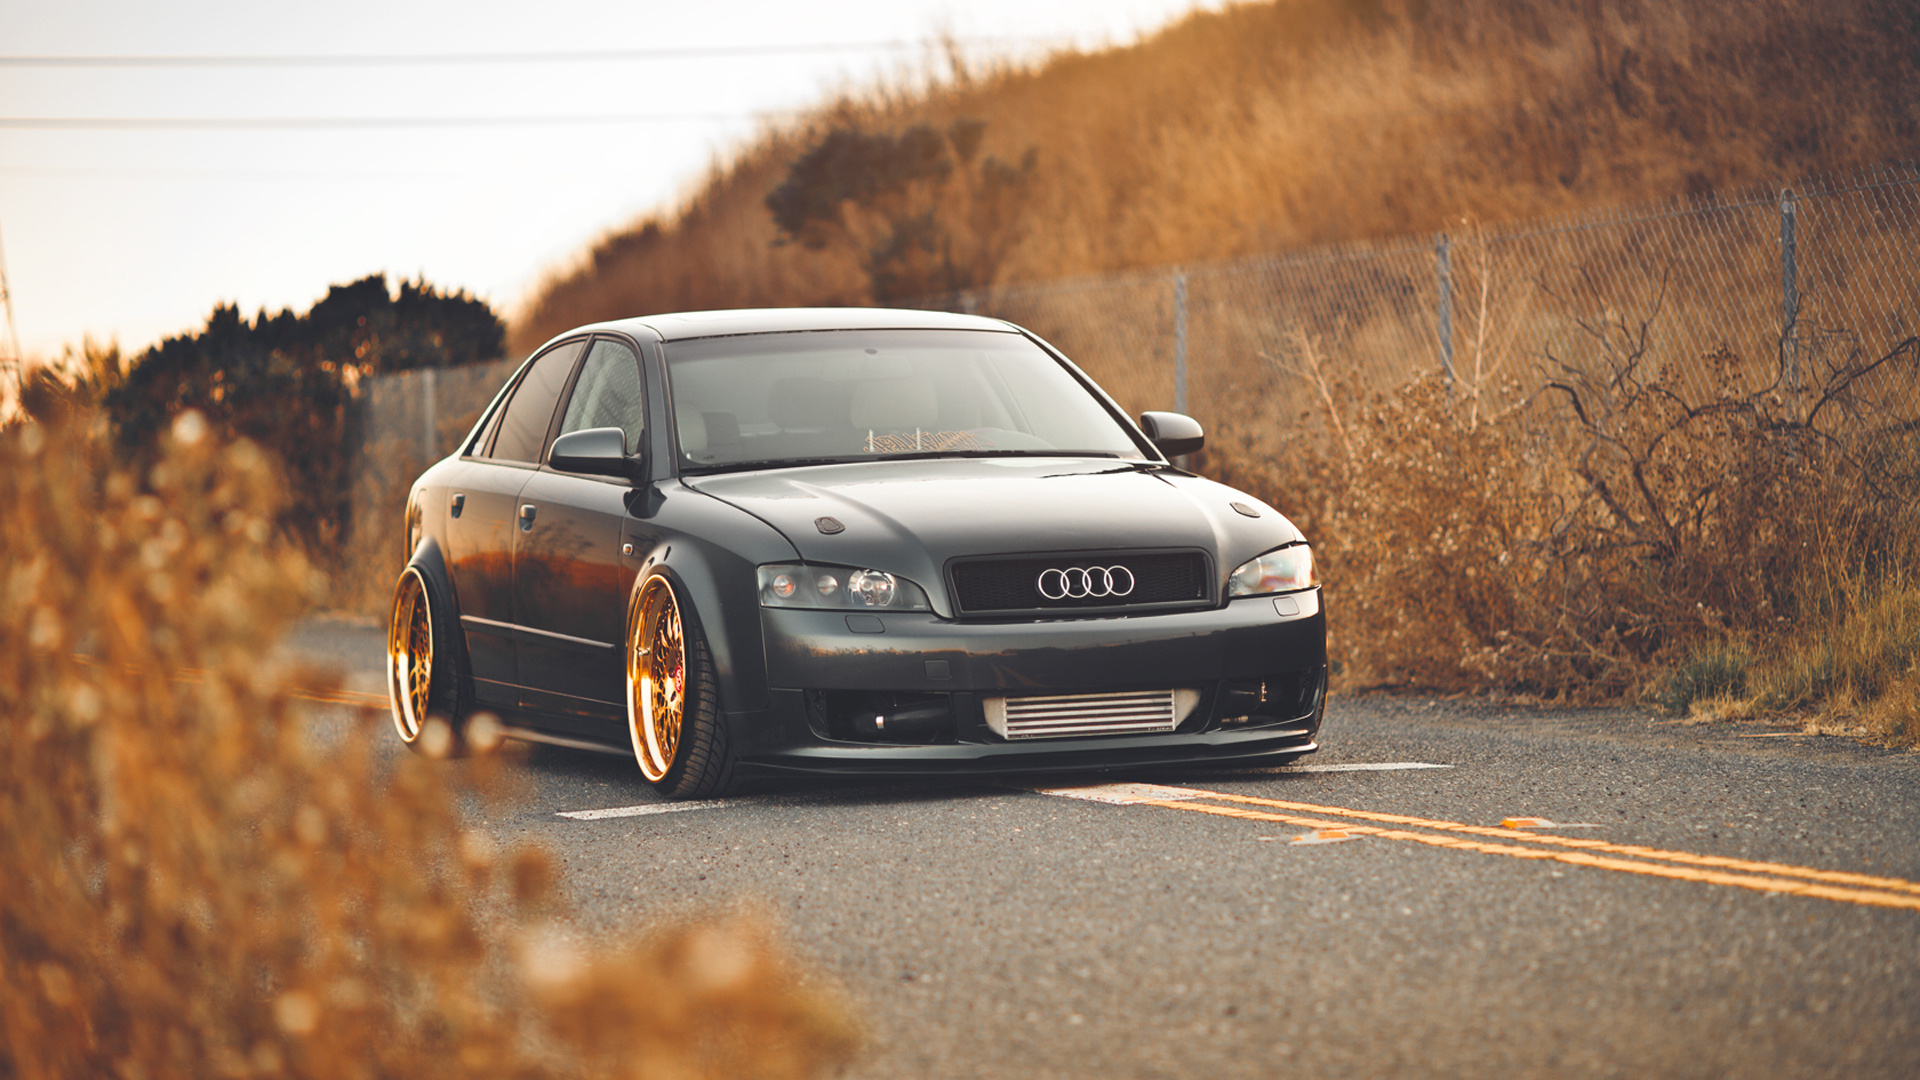 Download Wallpaper 1920x1080 Audi A4 Autumn Gold Full HD